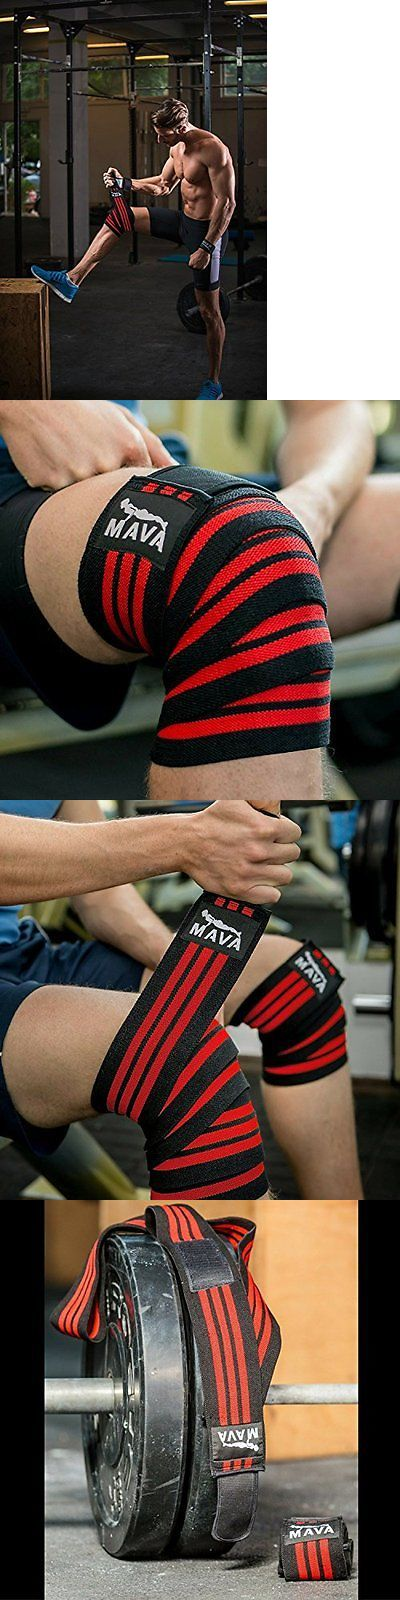 Wrist and Knee Wraps 179821: Knee Wraps With Velcro For Gym Workout Weightlifting Cross Training Fitness -> BUY IT NOW ONLY: $34.3 on eBay!